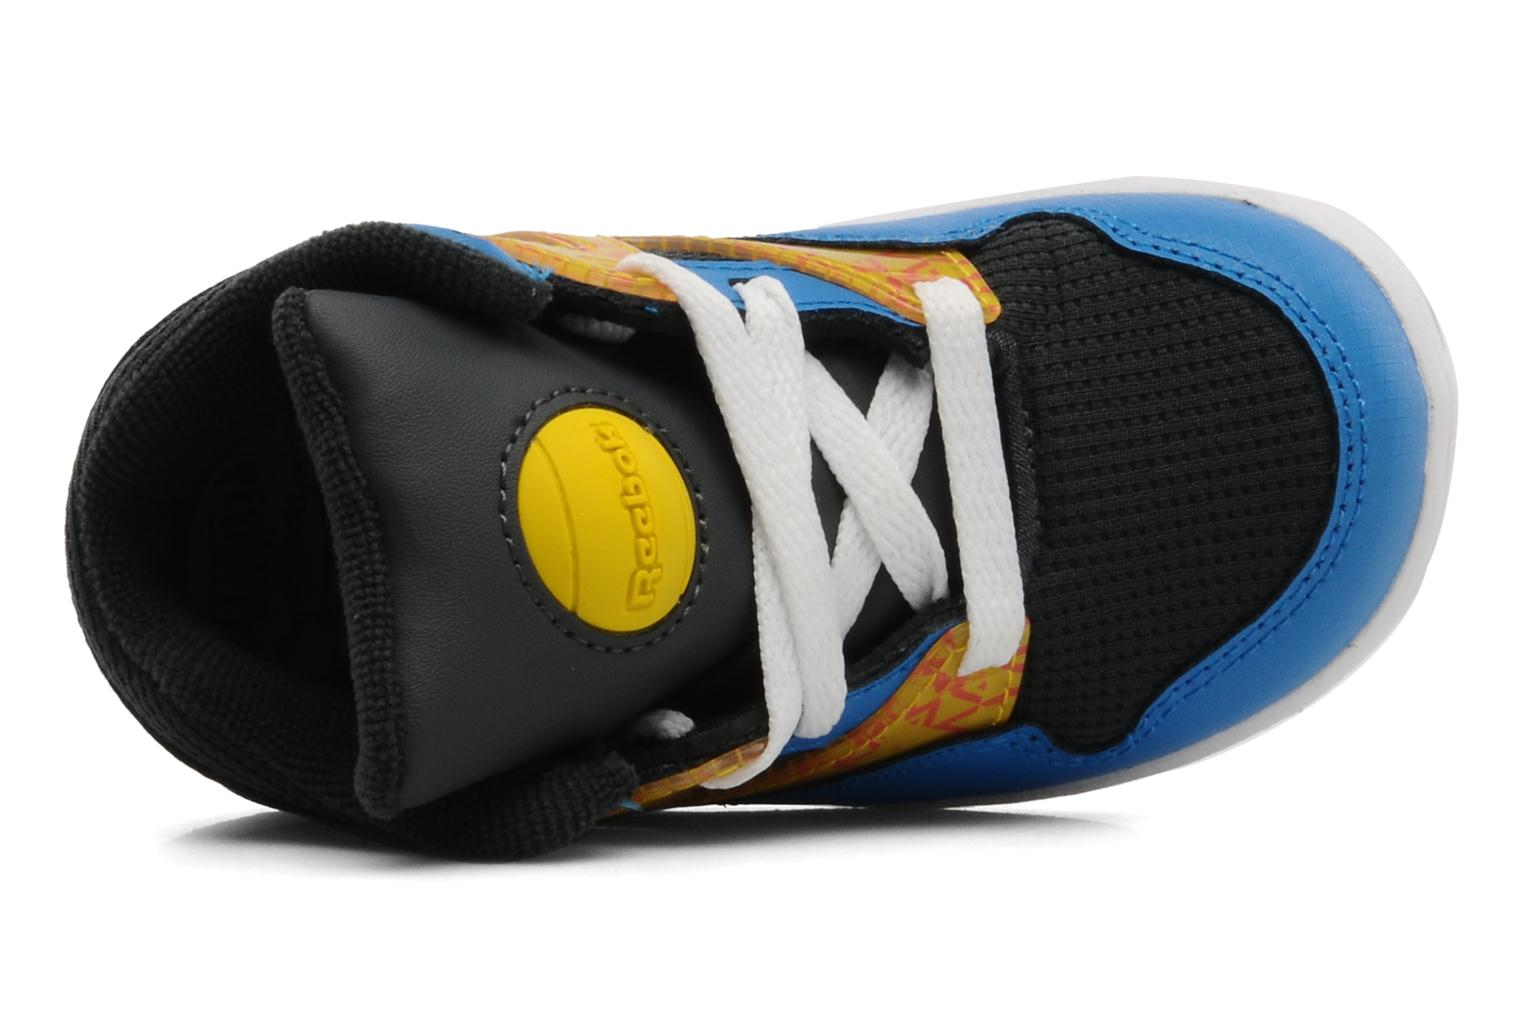 Versa Pump Omni Lite Gravel/Modern Blue/Blaze Yellow/Vitamin C